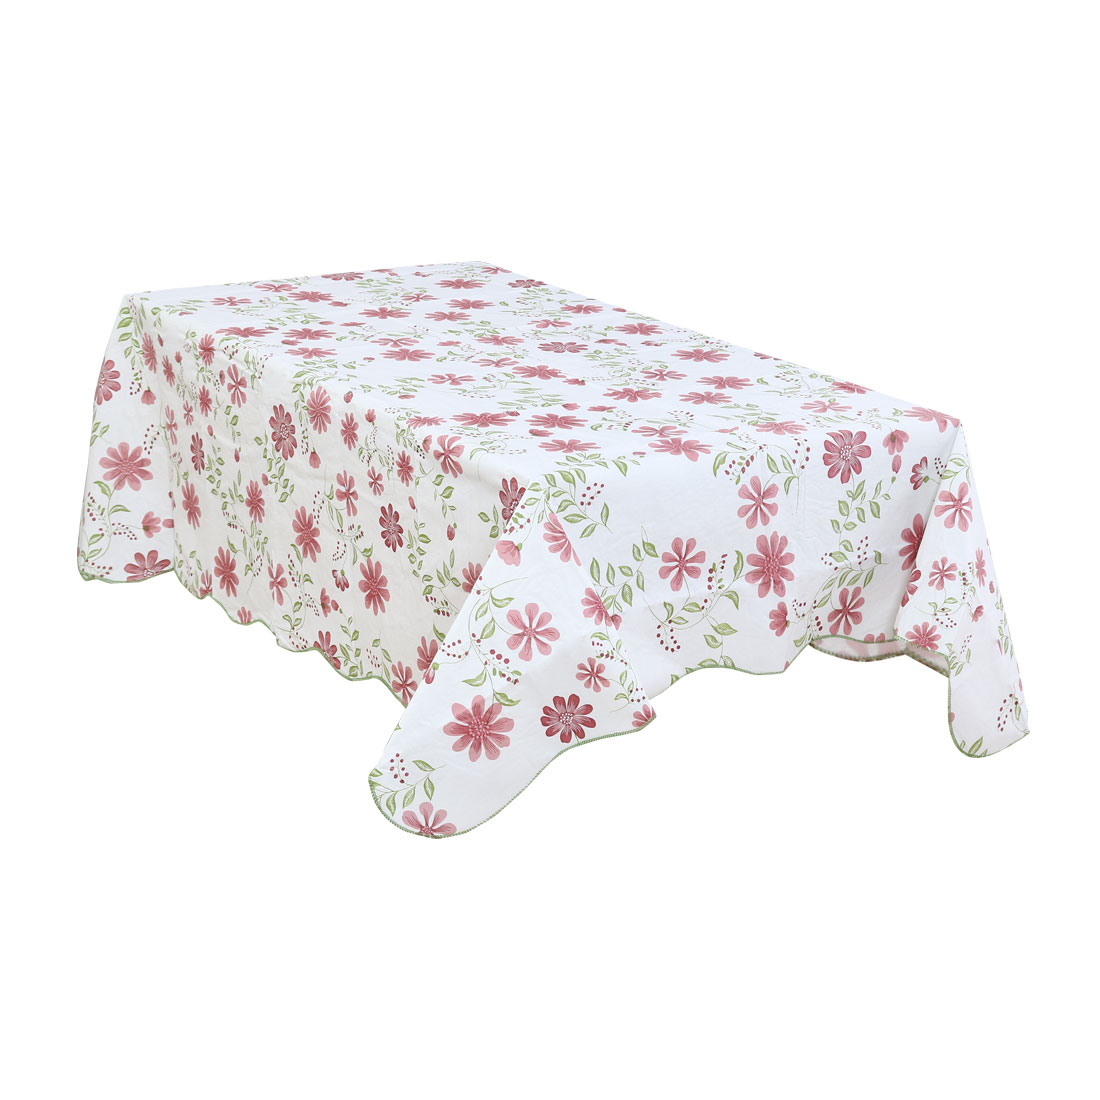 Home Picnics Nine-petals Flower Pattern Water Resistant Oil-proof Tablecloth Table Cloth Cover Red 60 x 60 Inch